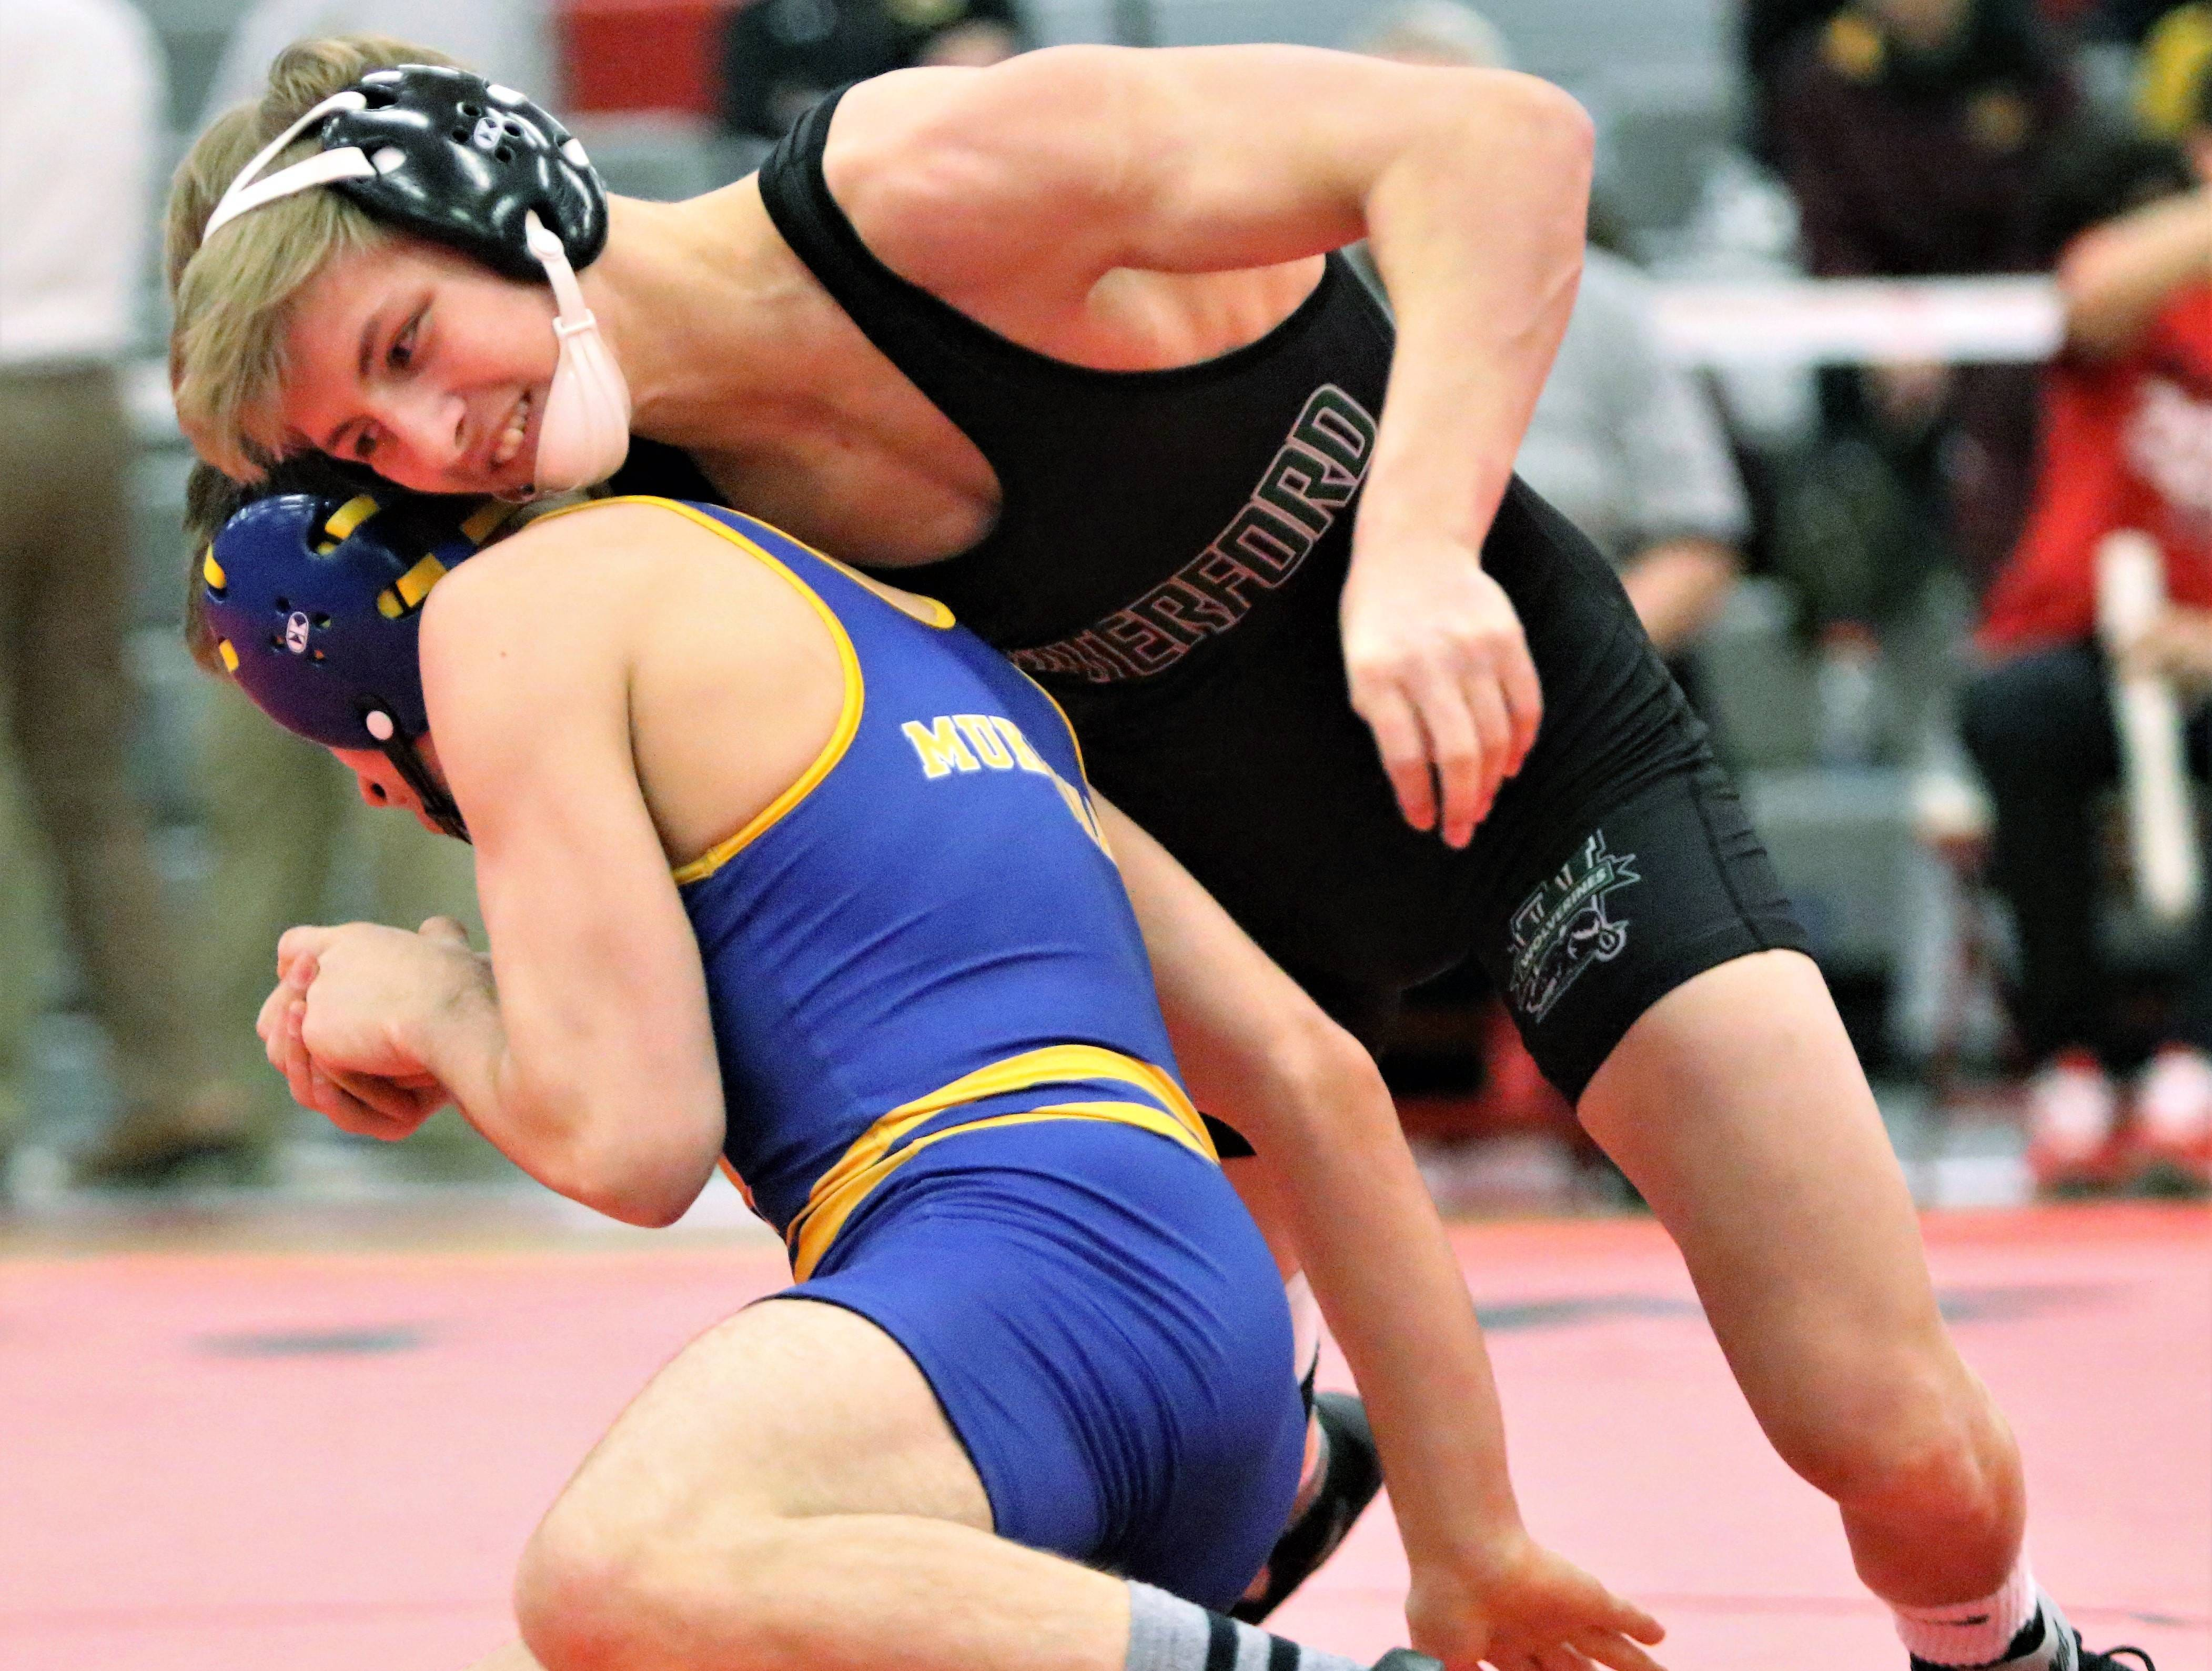 Waterford's Hayden Halter competes against Mukwonago's Jacob Wisinski during a sectional match at Racine Horlick on Feb. 16, 2019.